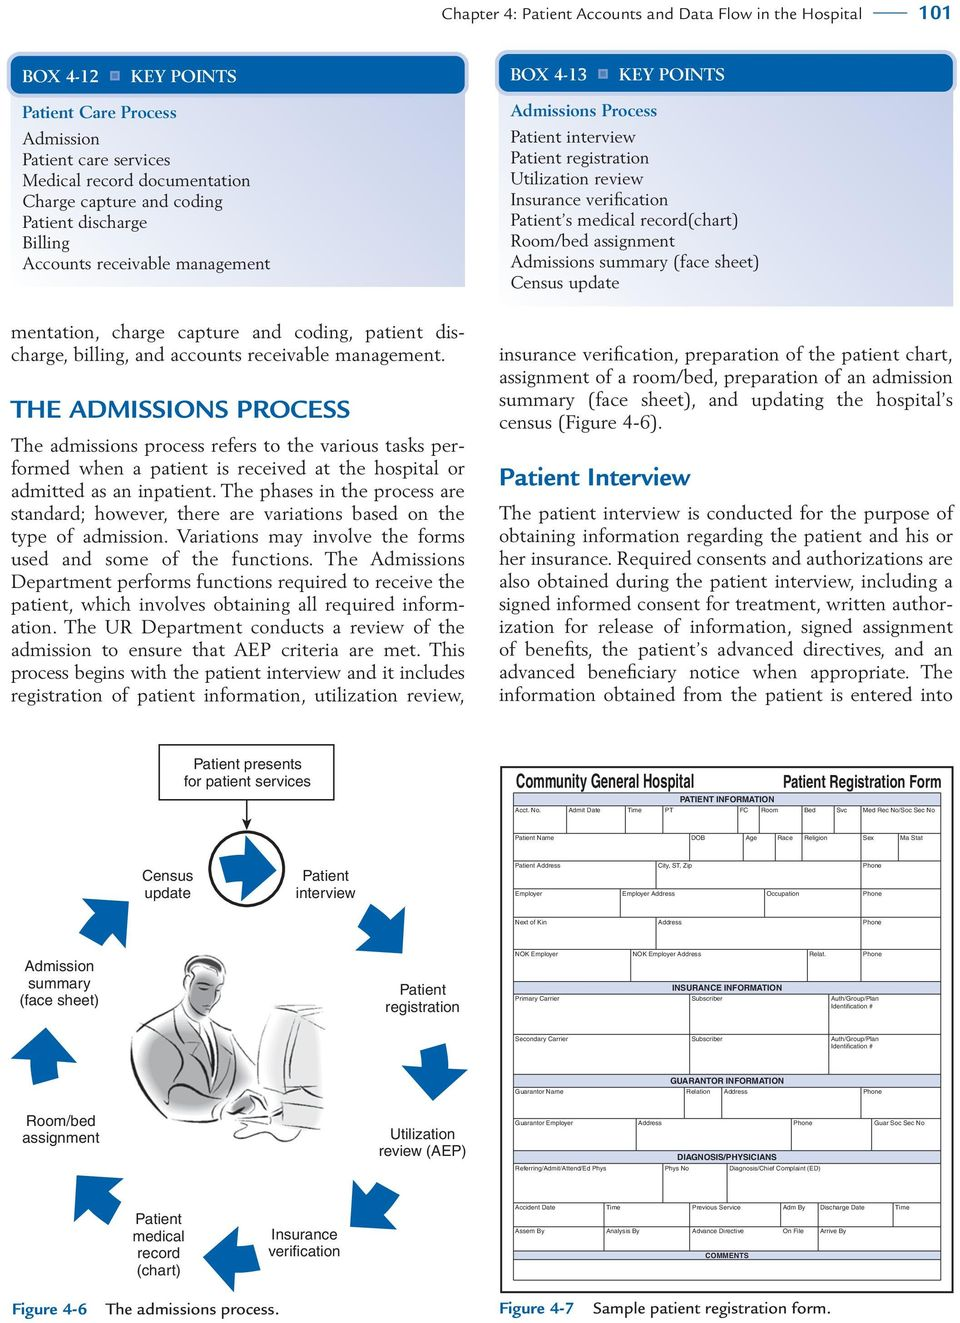 THE ADMISSIONS PROCESS The admissions process refers to the various tasks performed when a patient is received at the hospital or admitted as an inpatient.